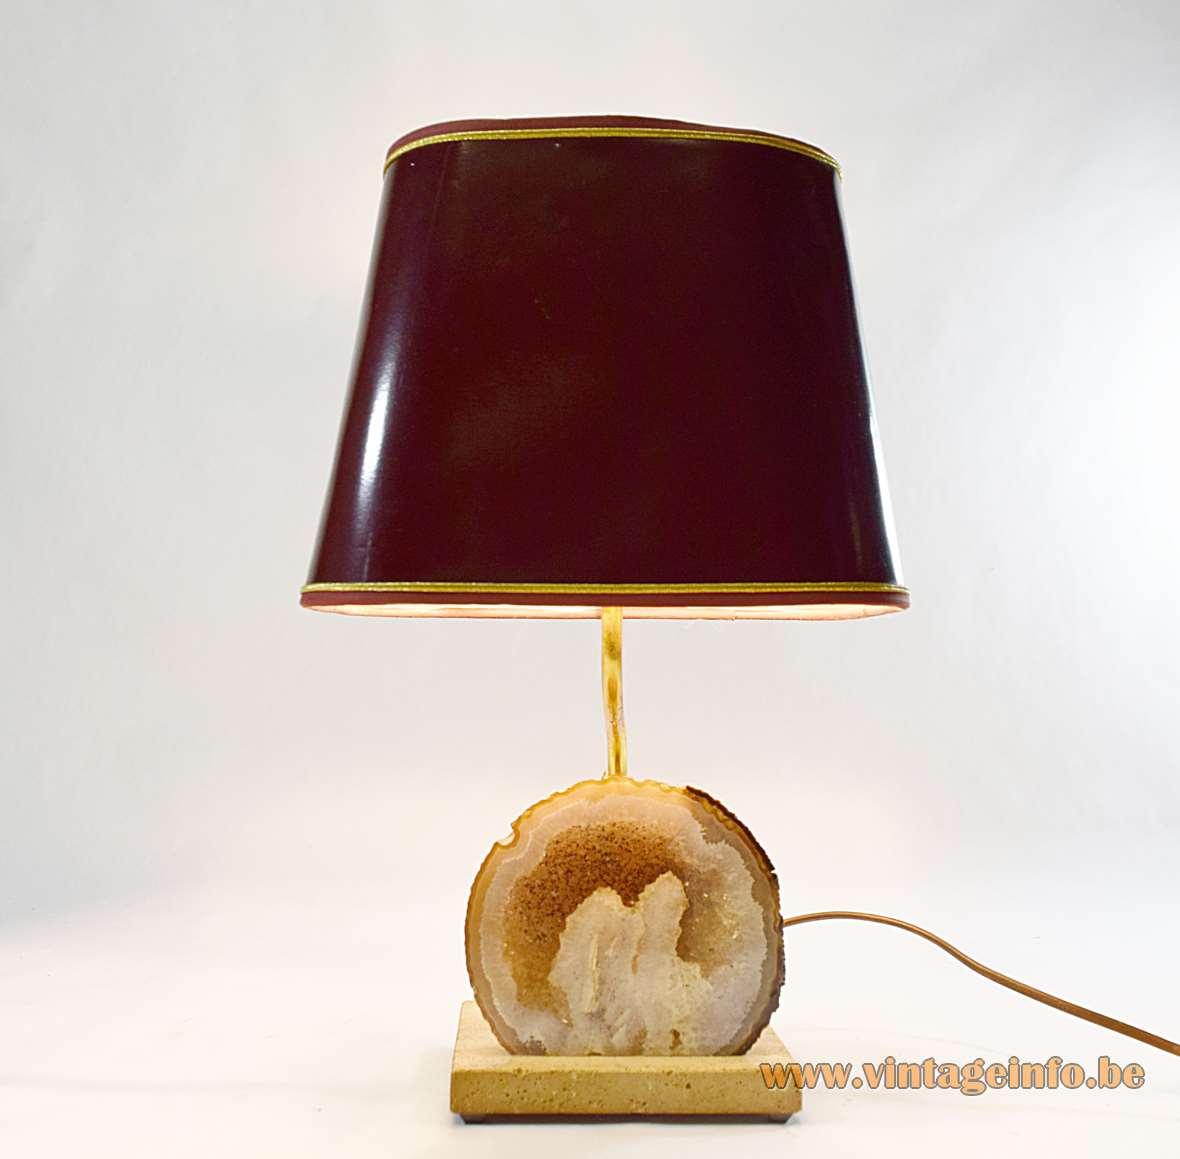 Agate table lamp design: Pierre Faveere geode travertine base brass rod mineral stone 1970s Mid-Century Modern MCM E27 socket